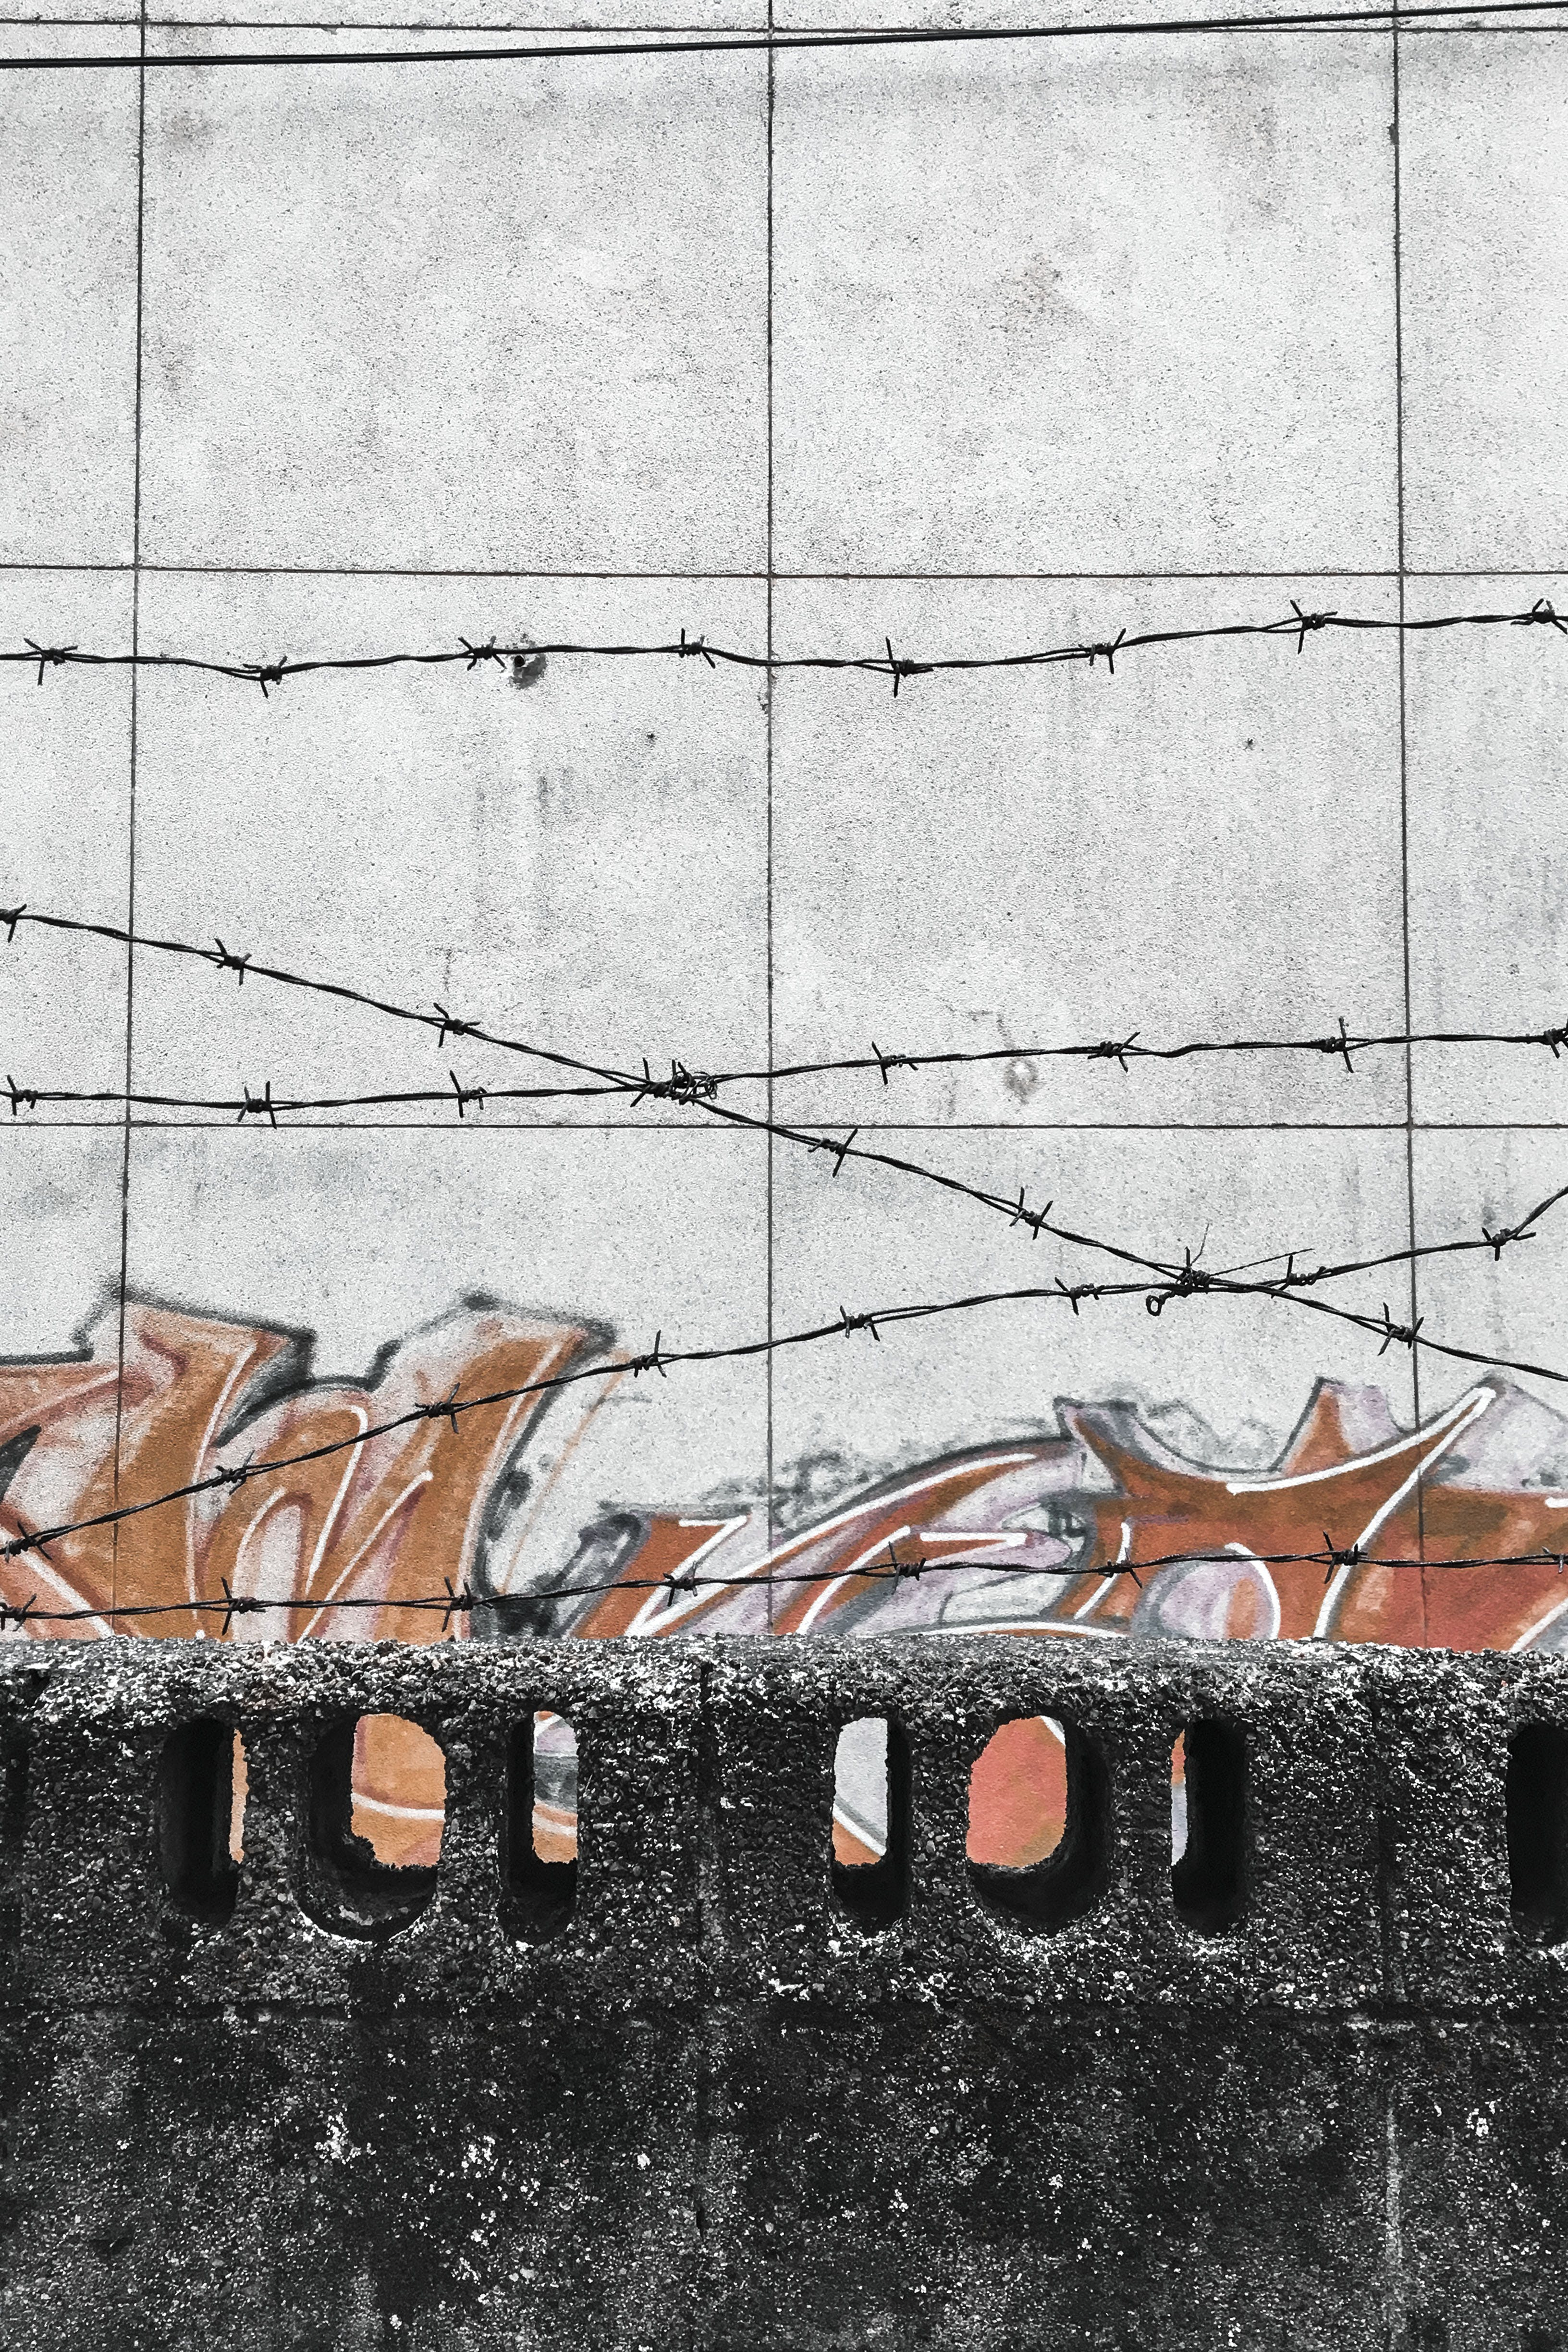 Barbed Wires Behind Concrete Wall